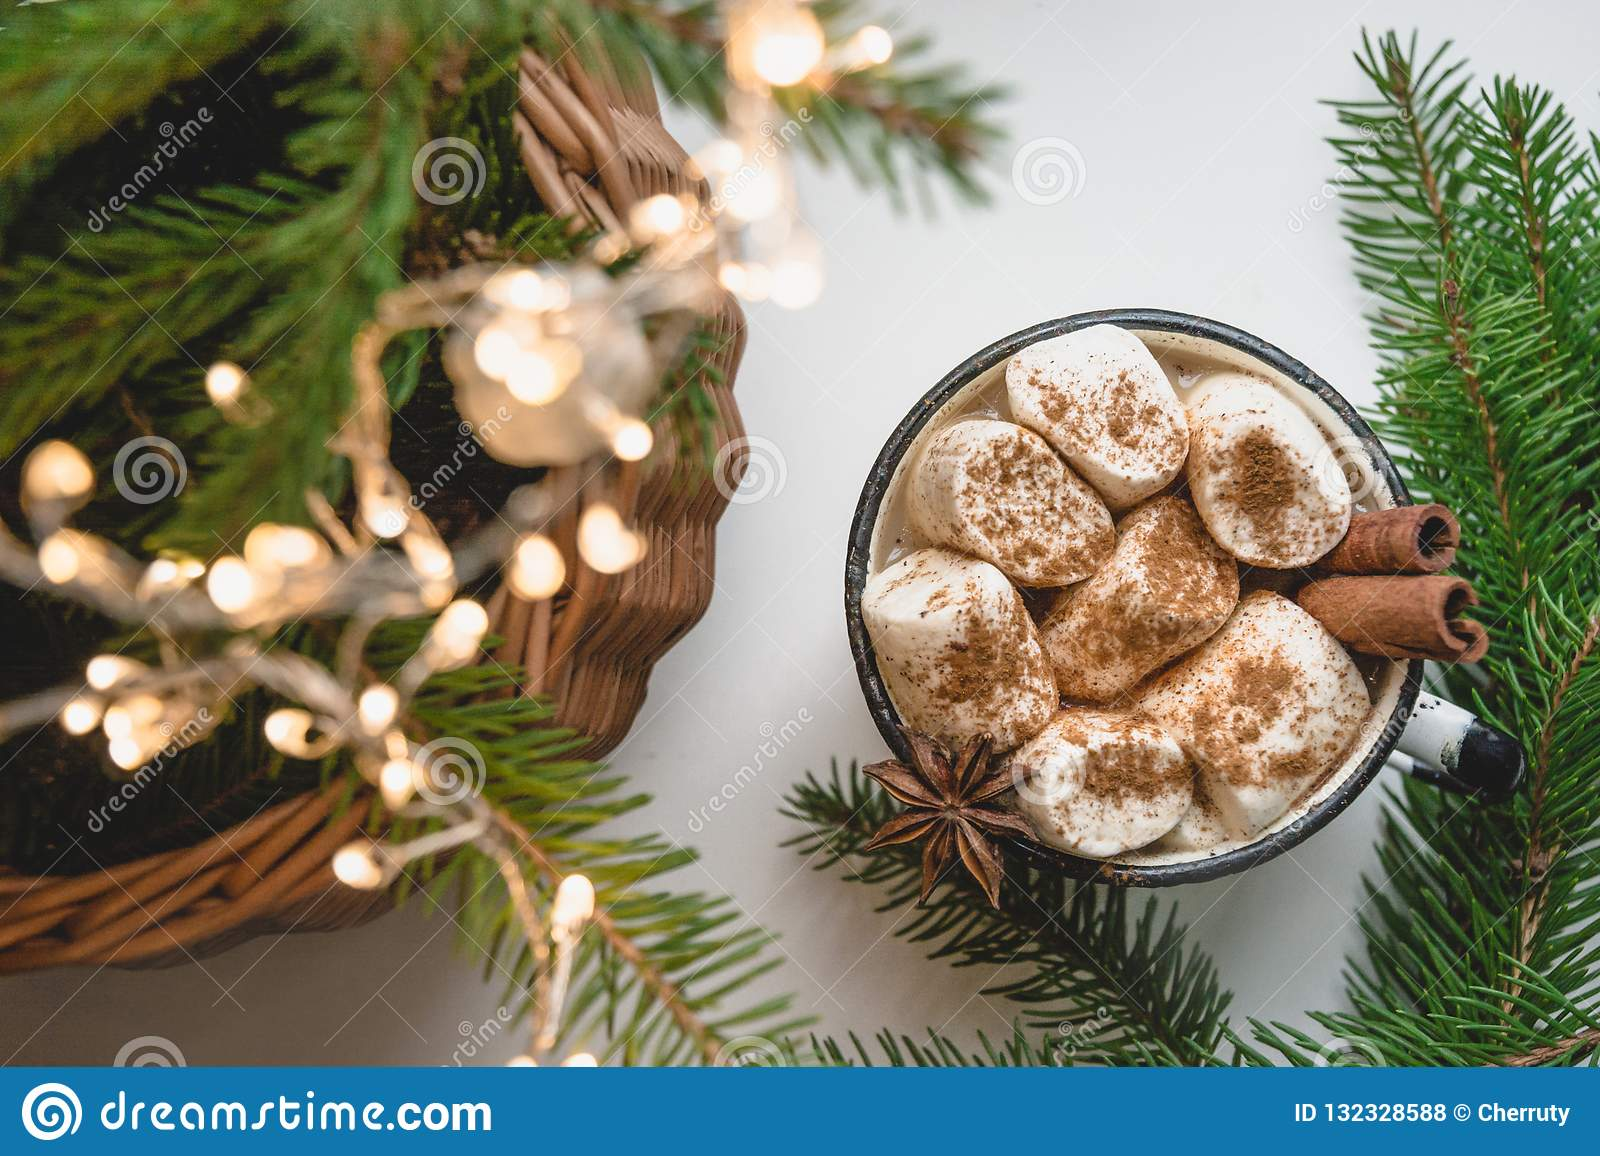 Winter Warming Mug Of Cacao And Chocolate With Marshmallow On Windowsill With Christmas Tree Decor Stock Photo Image Of Cacao Marshmallow 132328588